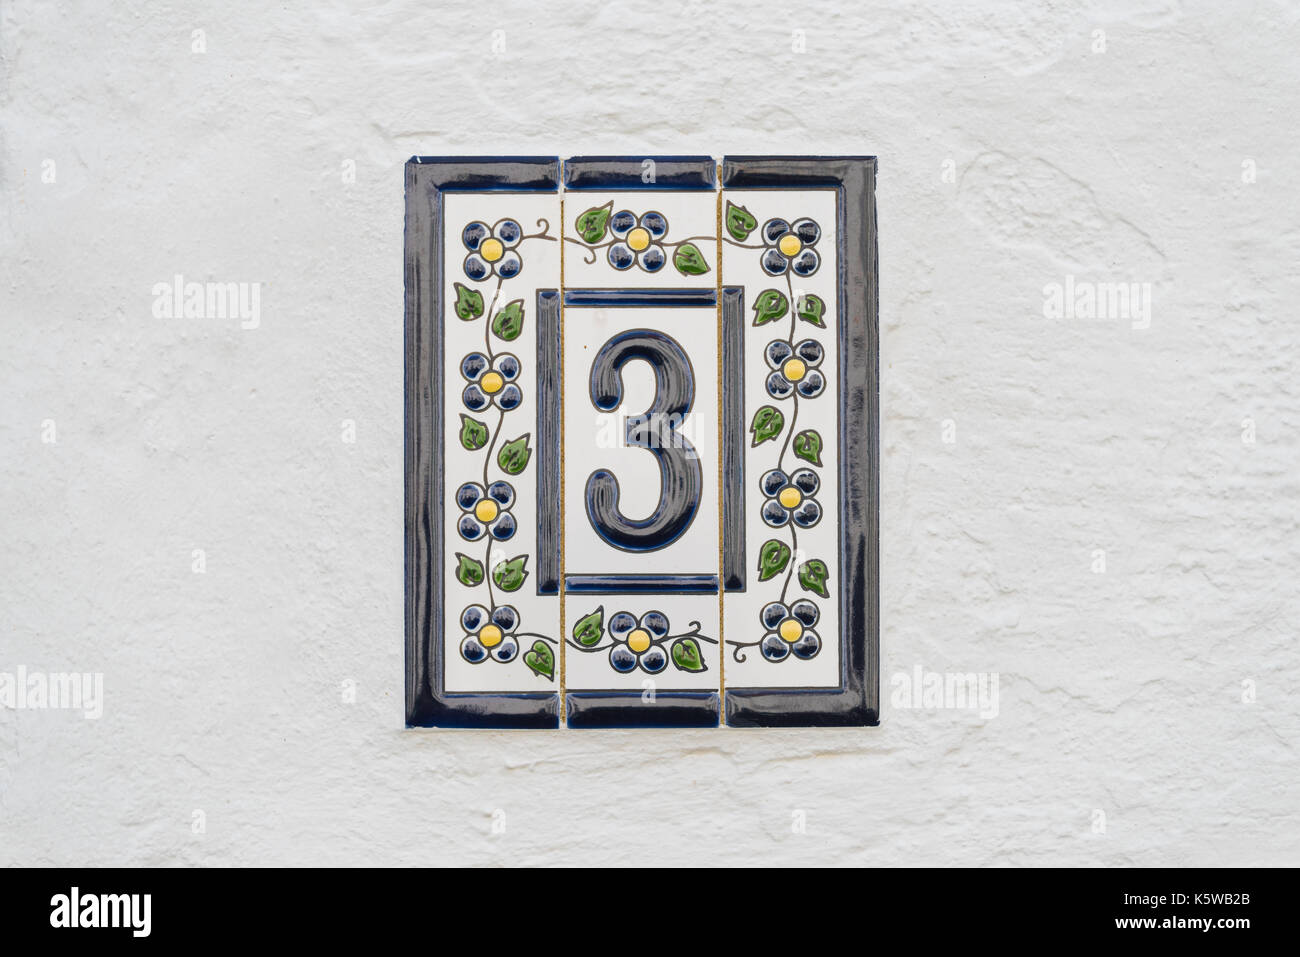 House Number Three Decorated With Tiles On A White Wall